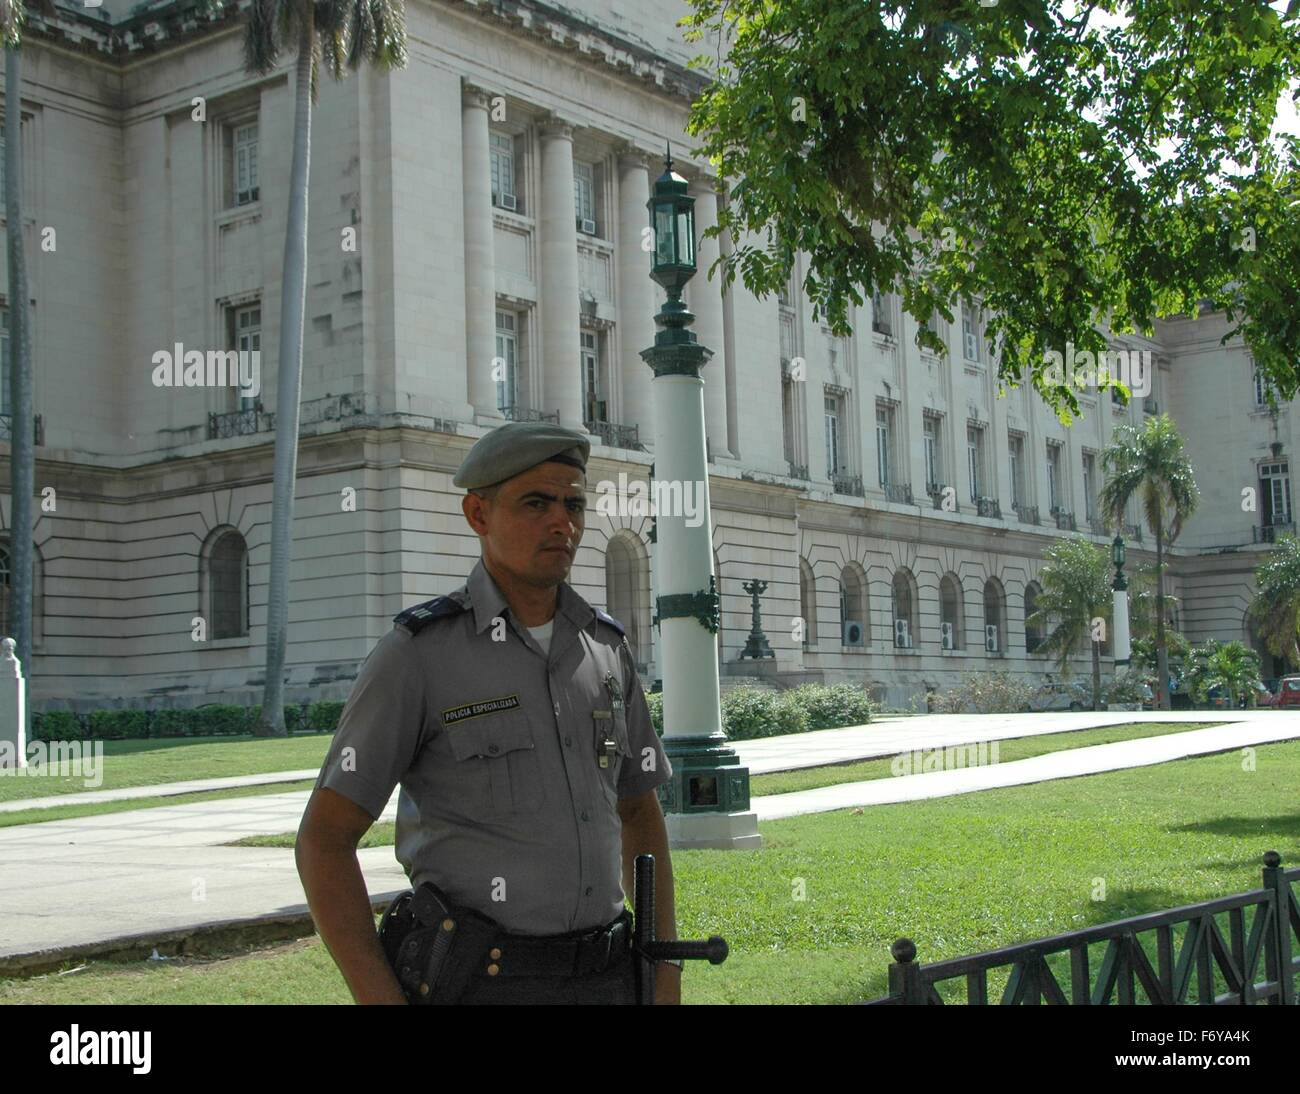 A member of the special police at the capital building in Havana, Cuba - Stock Image